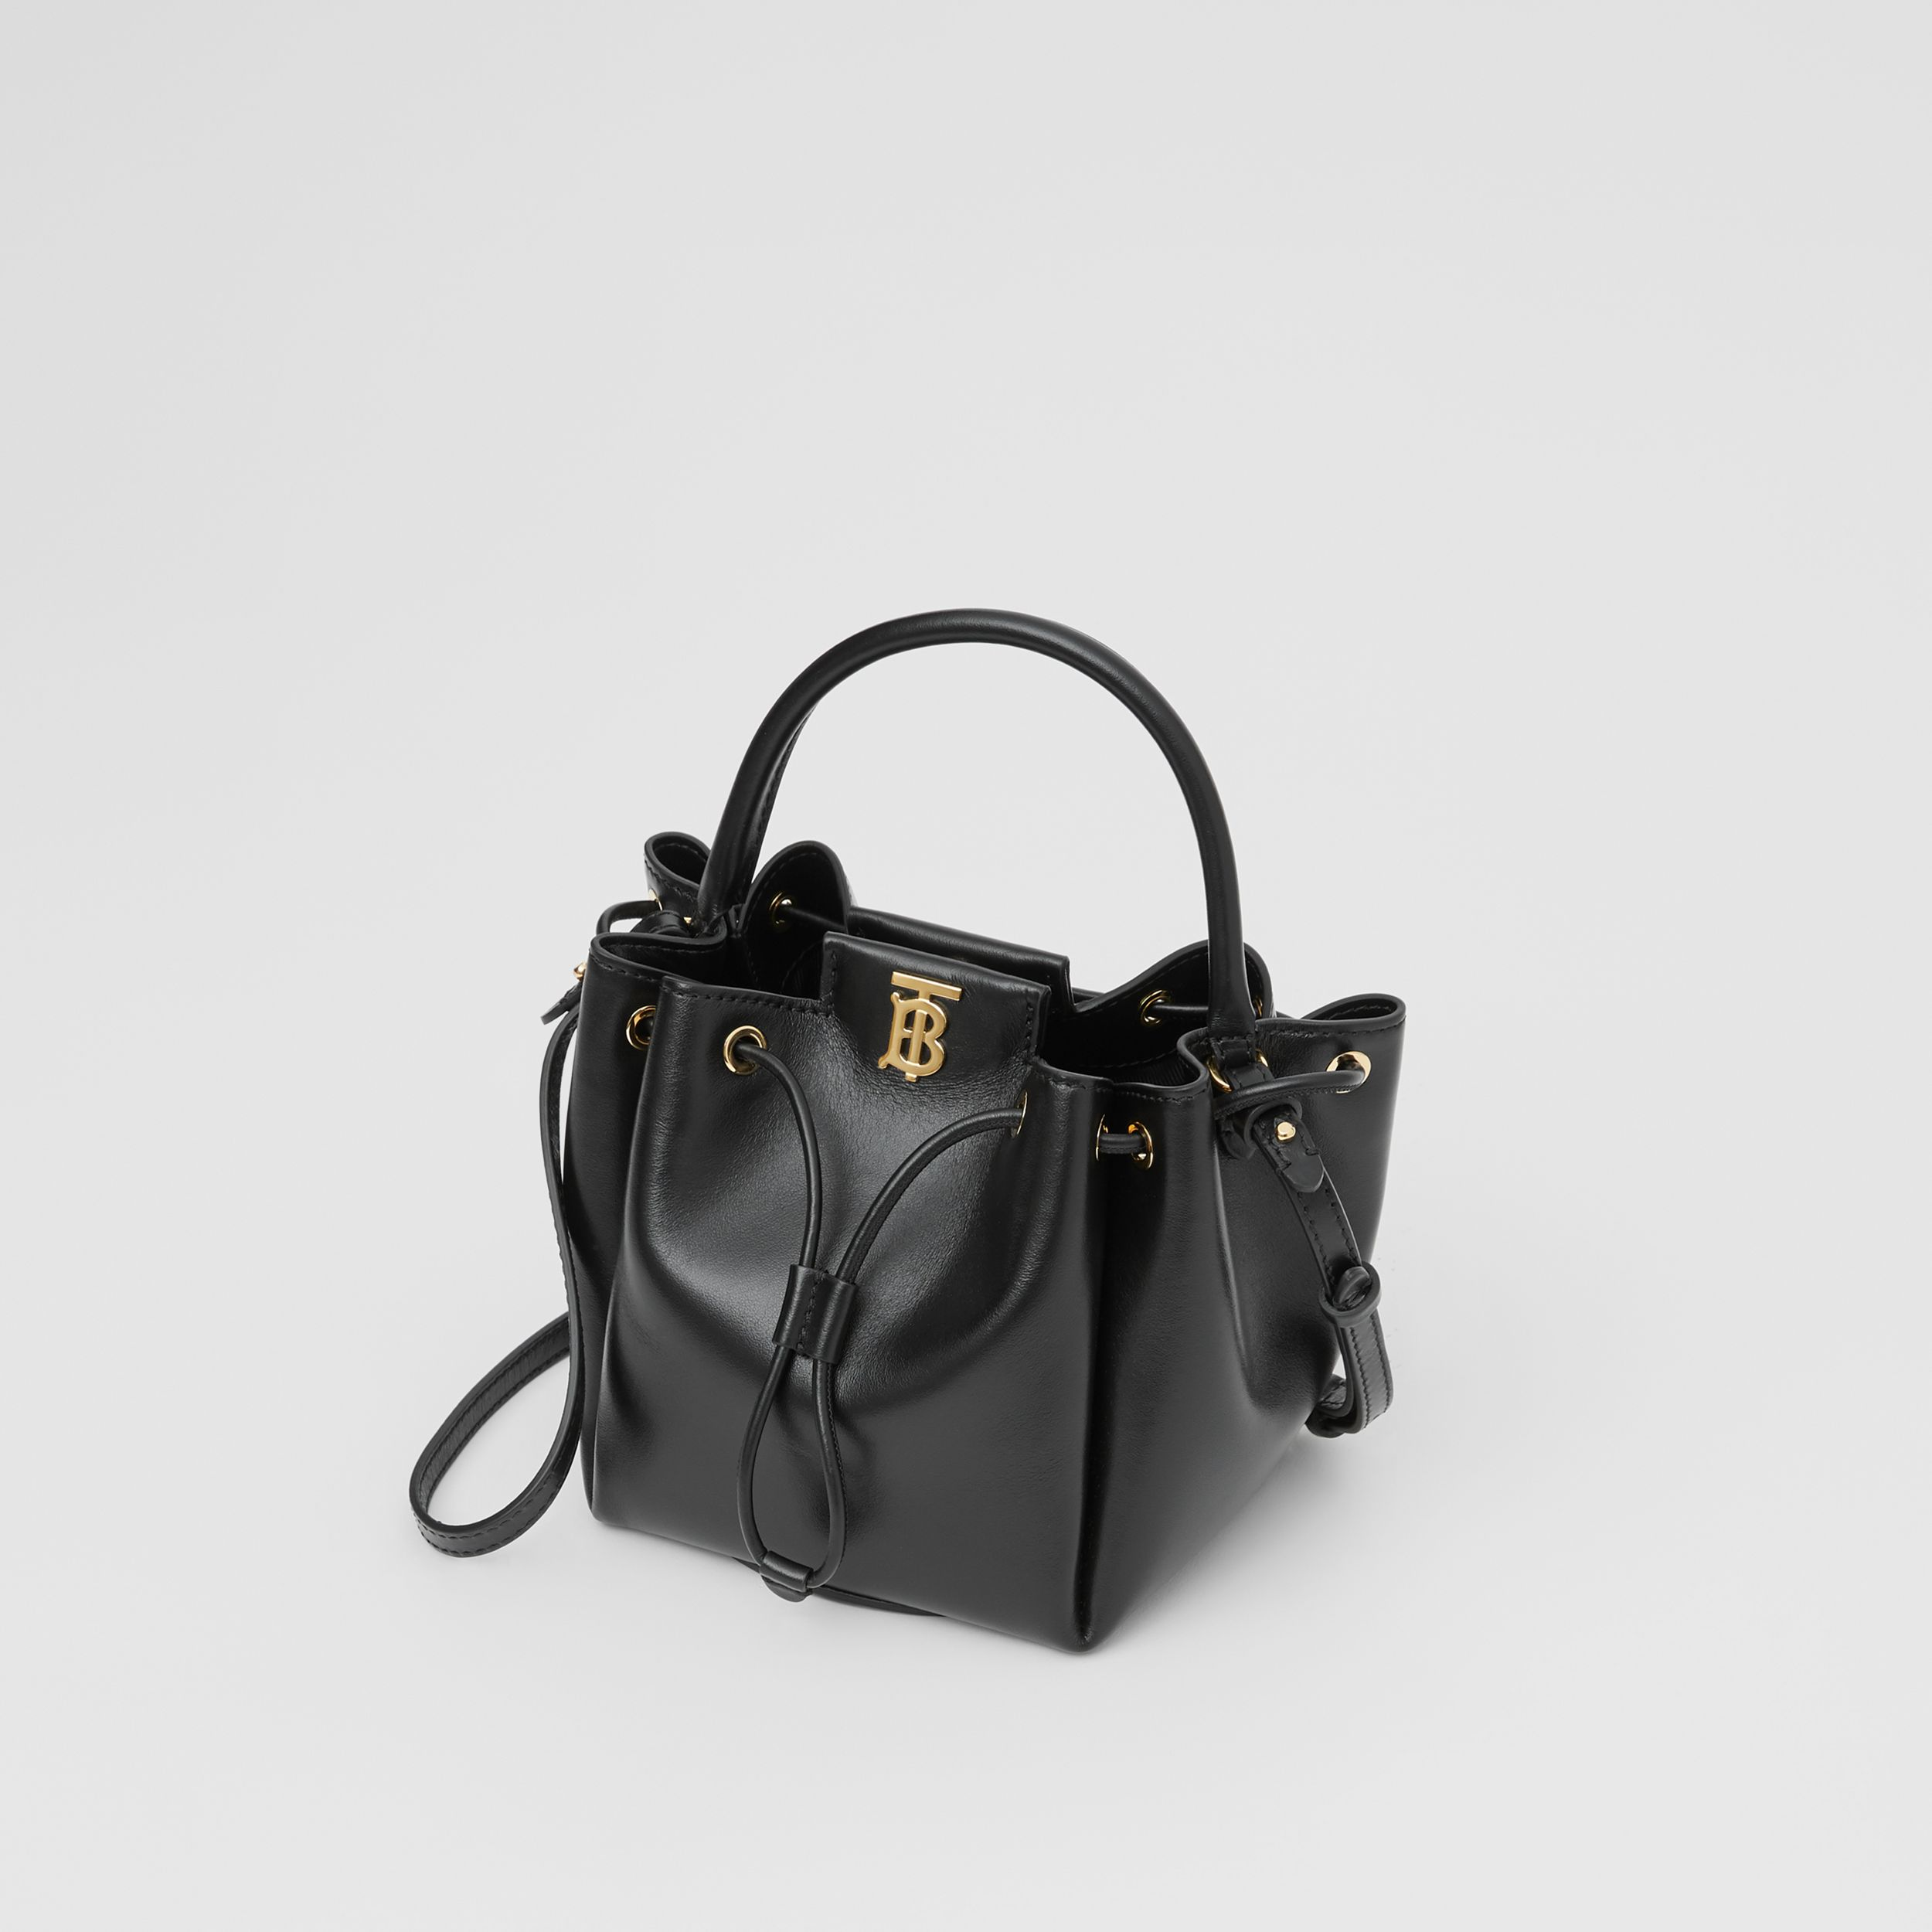 Monogram Motif Leather Bucket Bag in Black - Women | Burberry - 4